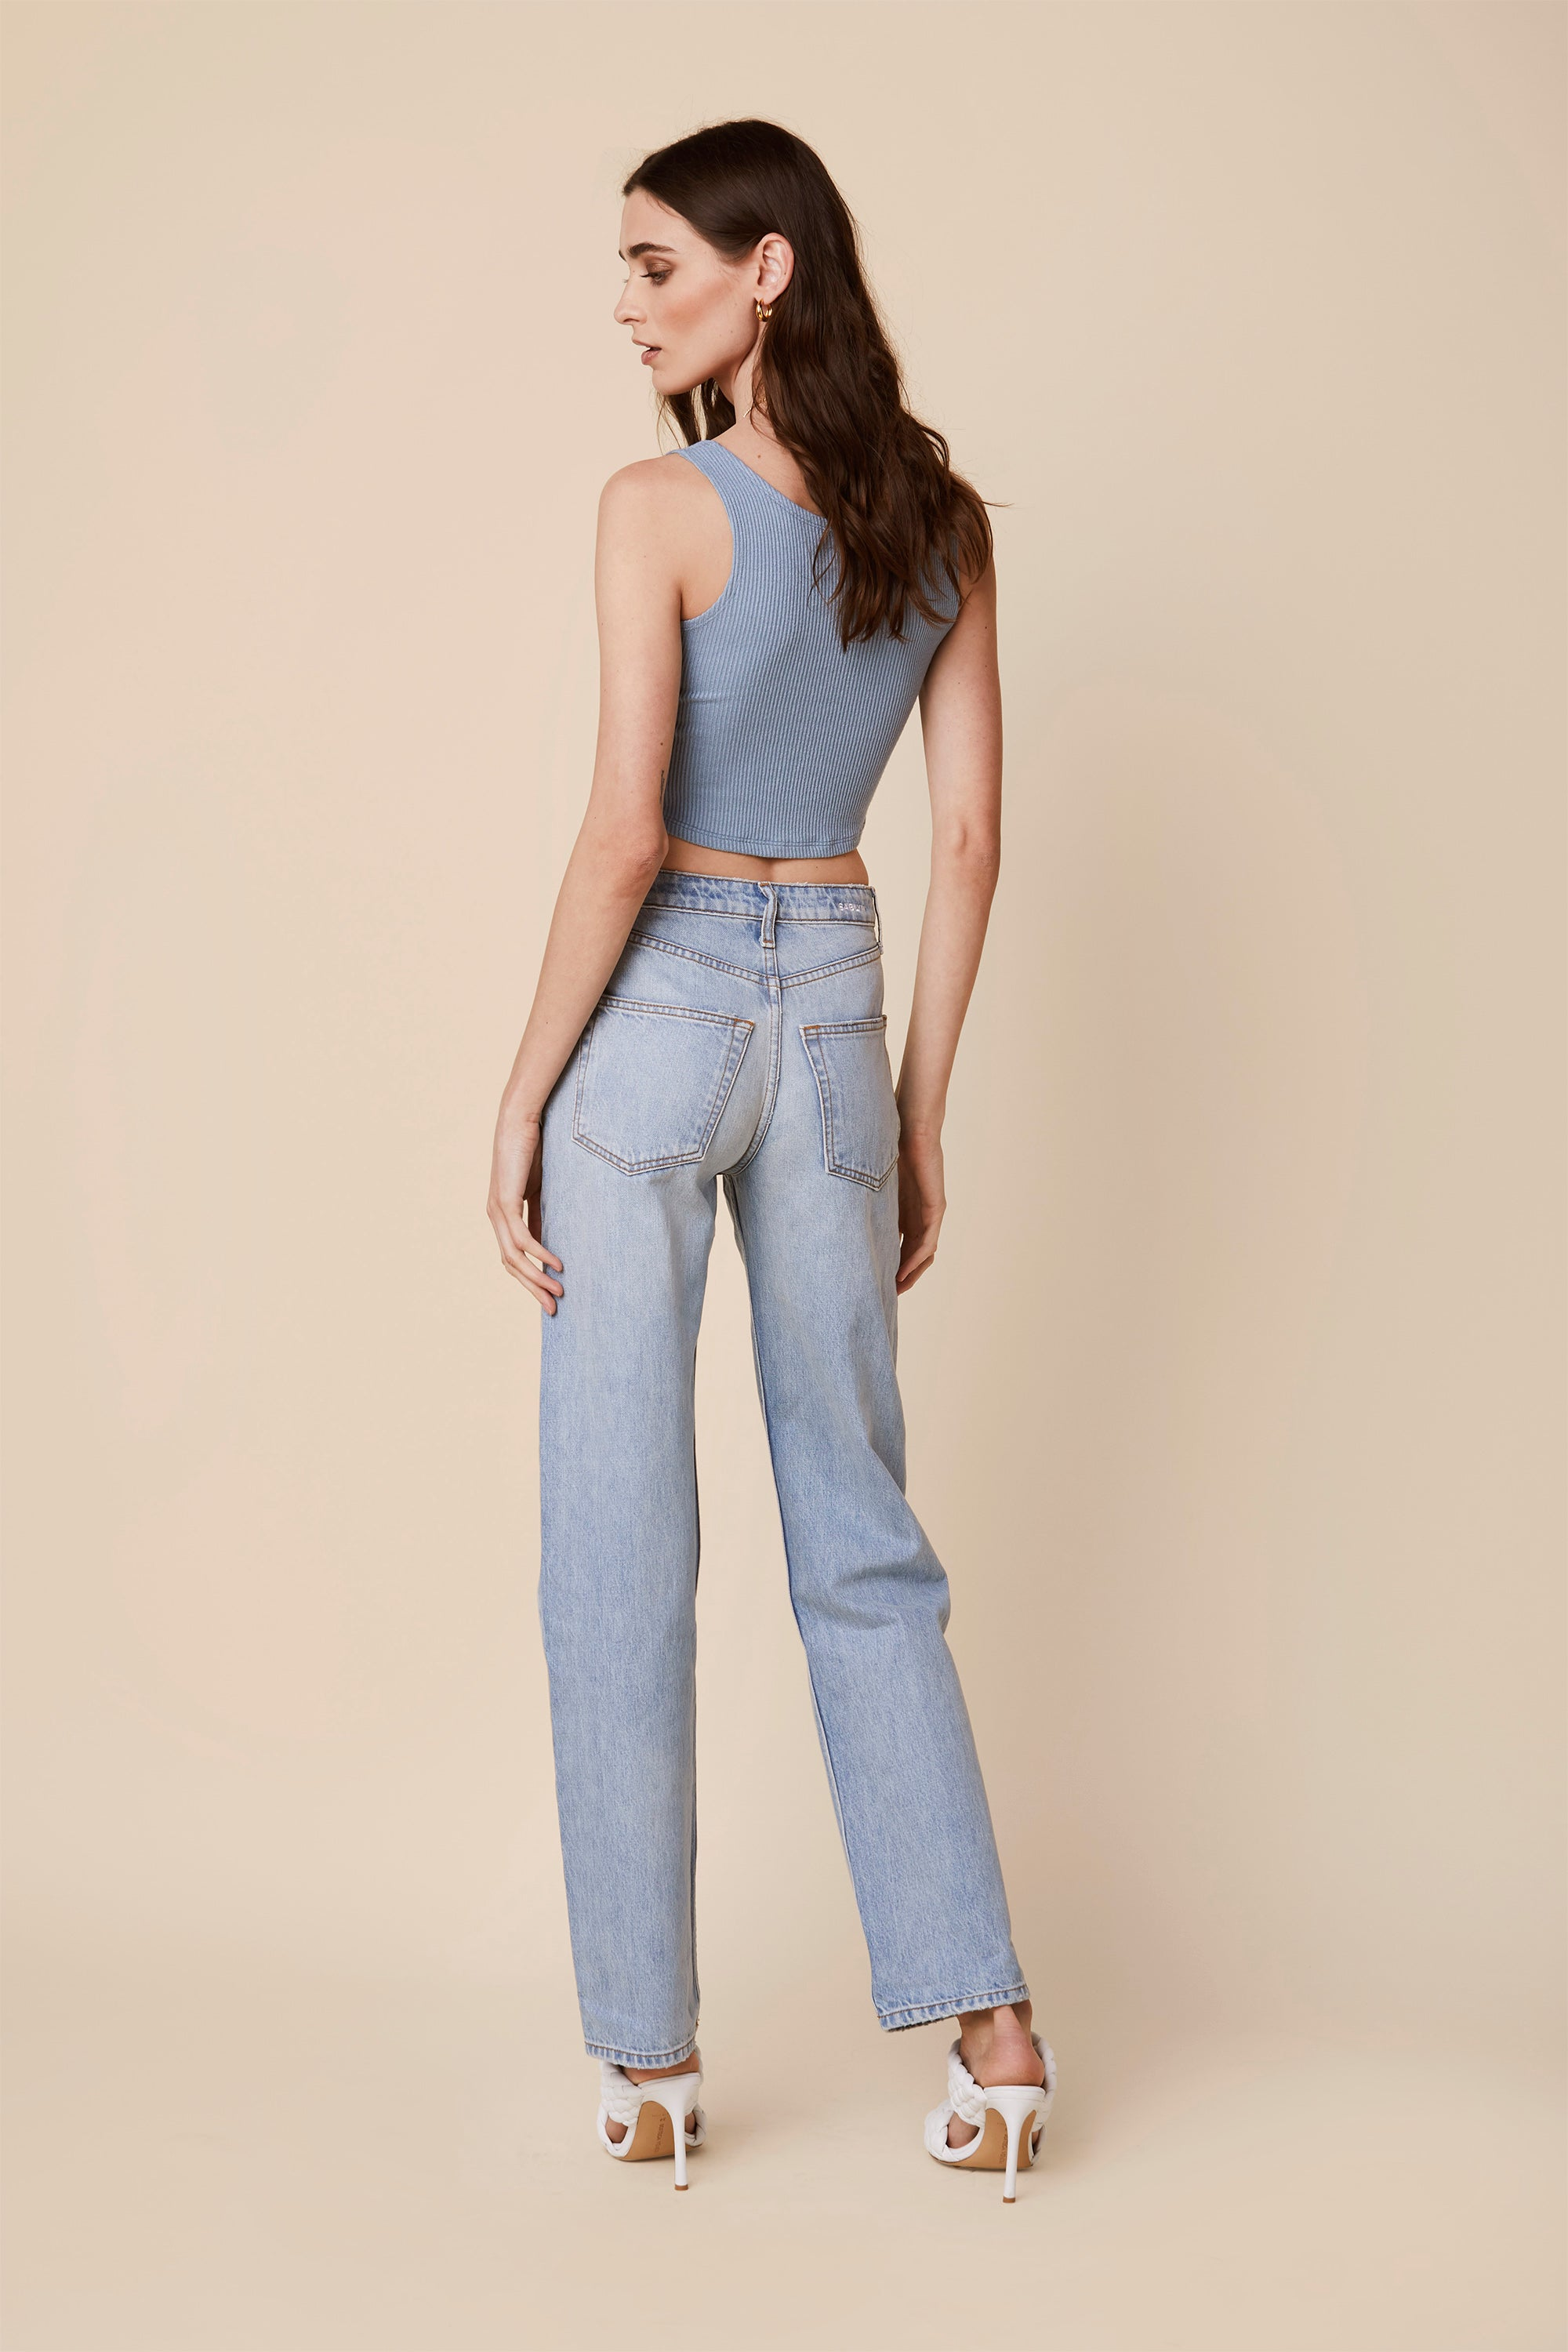 SAMMY DENIM JEANS | INDIGO